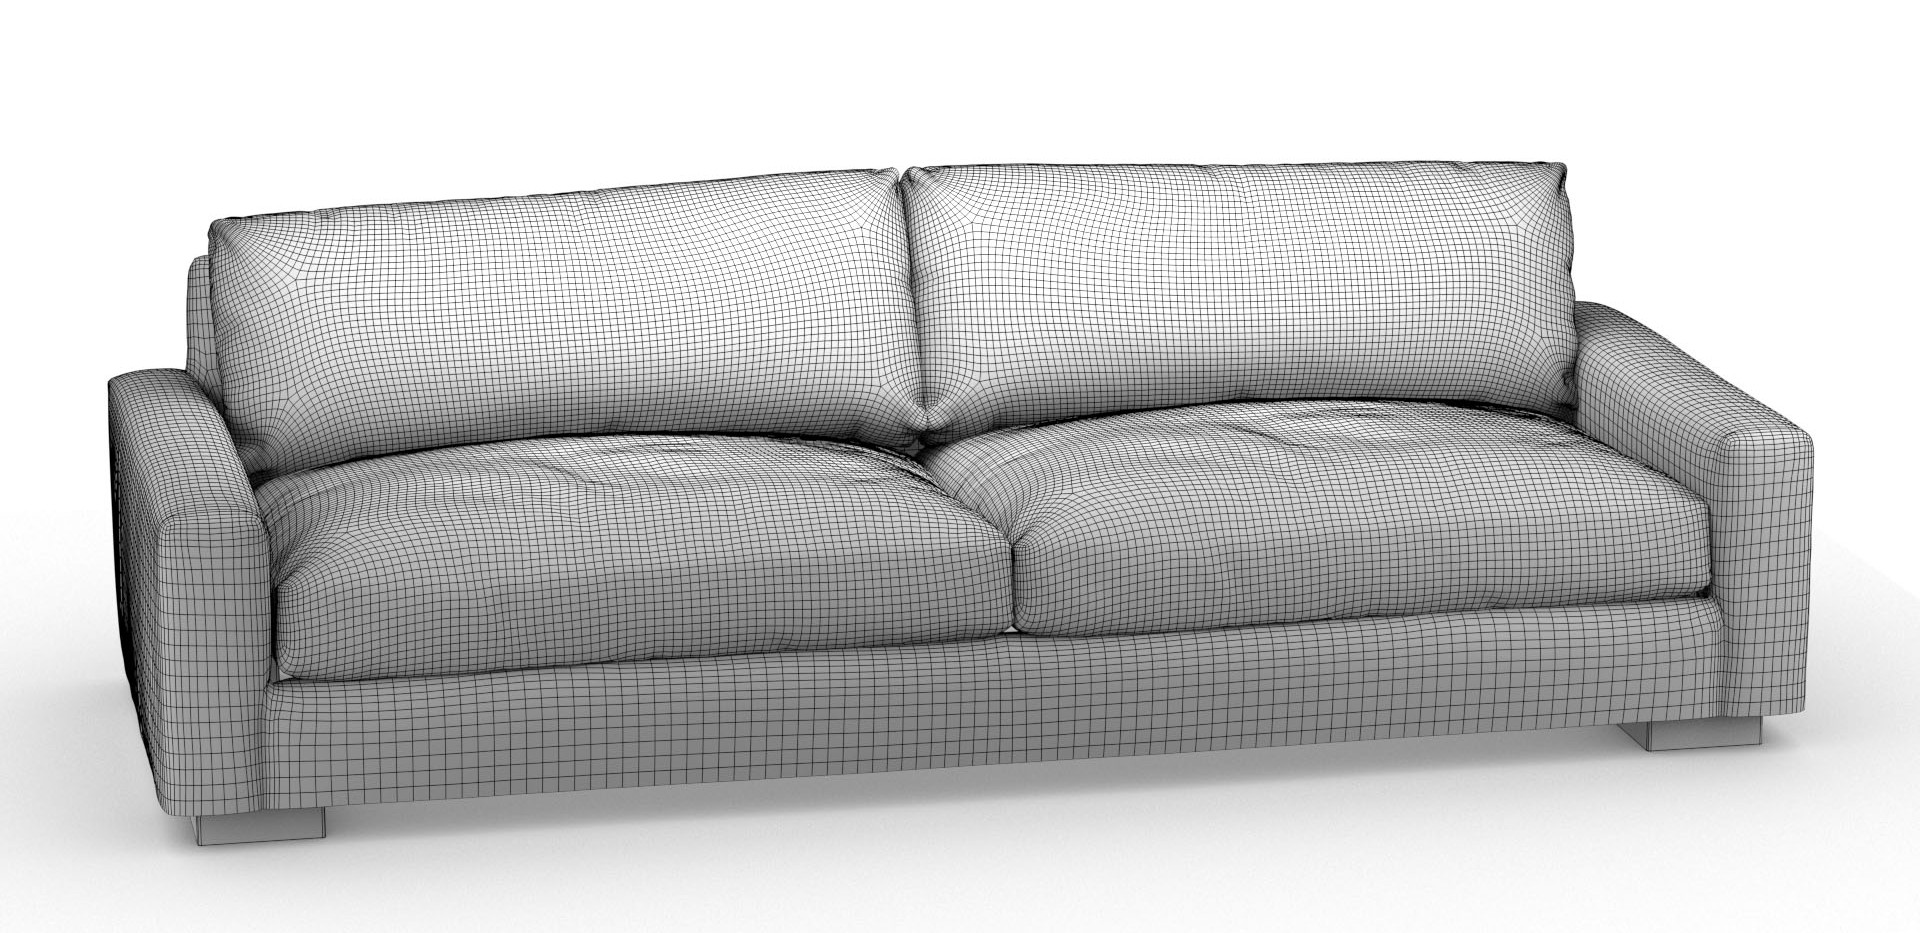 sofa wireframe